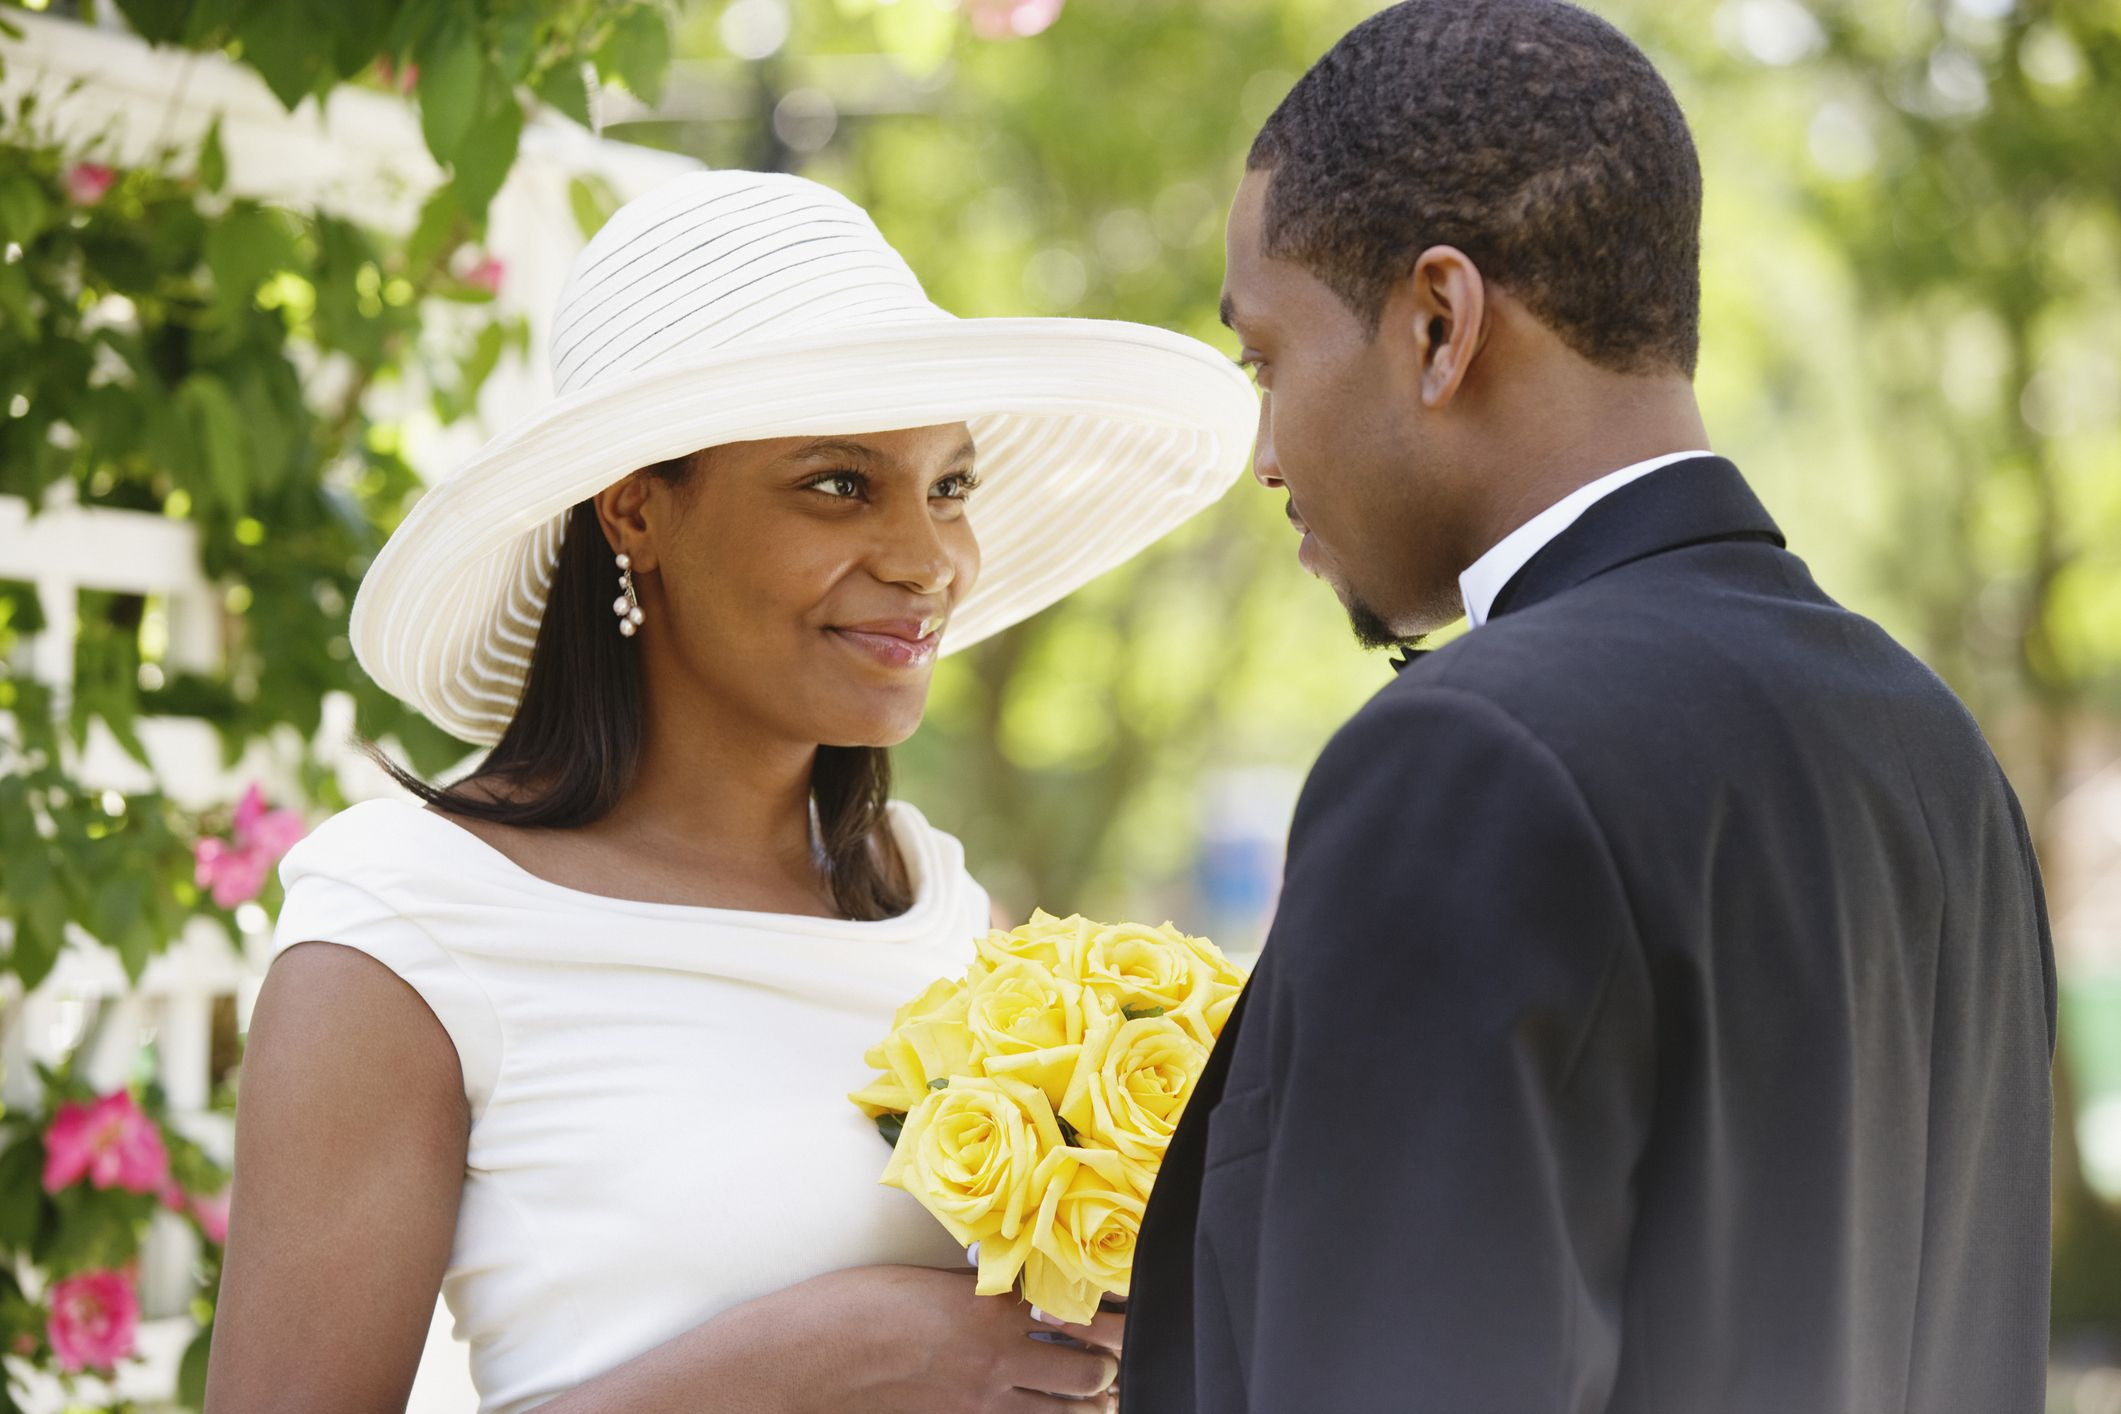 Planning A Vow Renewal Ceremony: Step-By-Step Guide